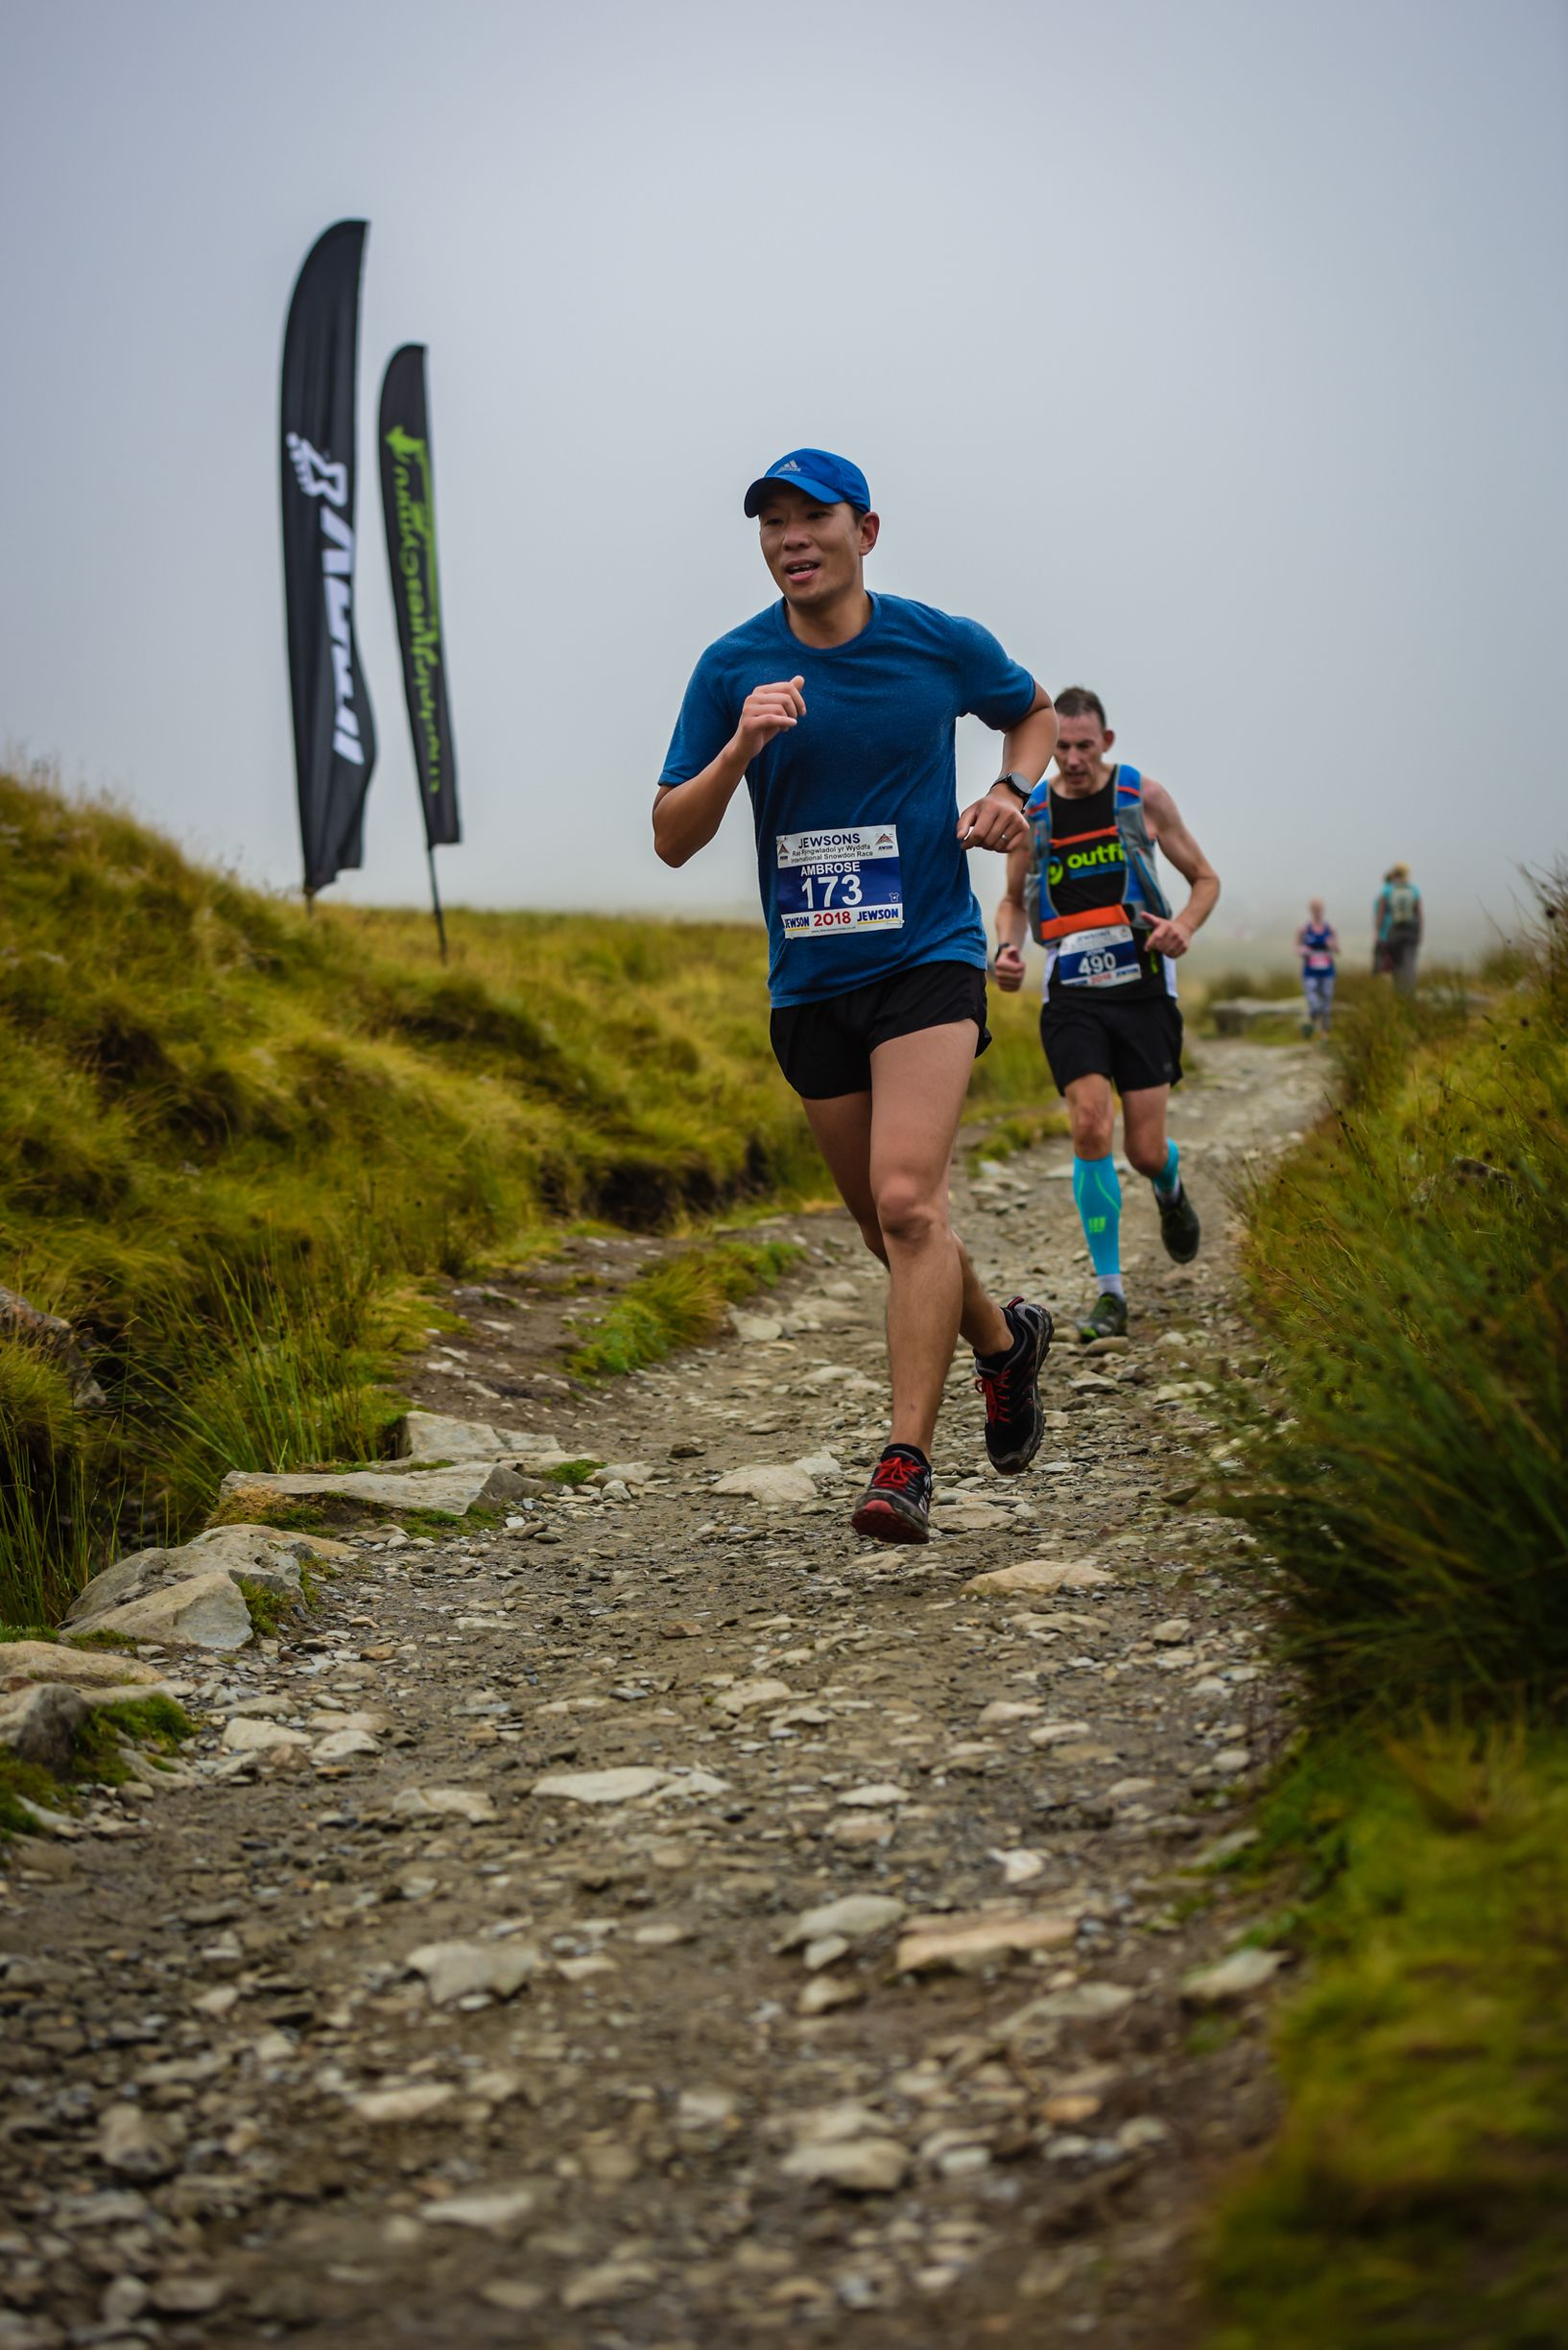 Teem Up founder participating in a running competition outdoors on a dirt trail